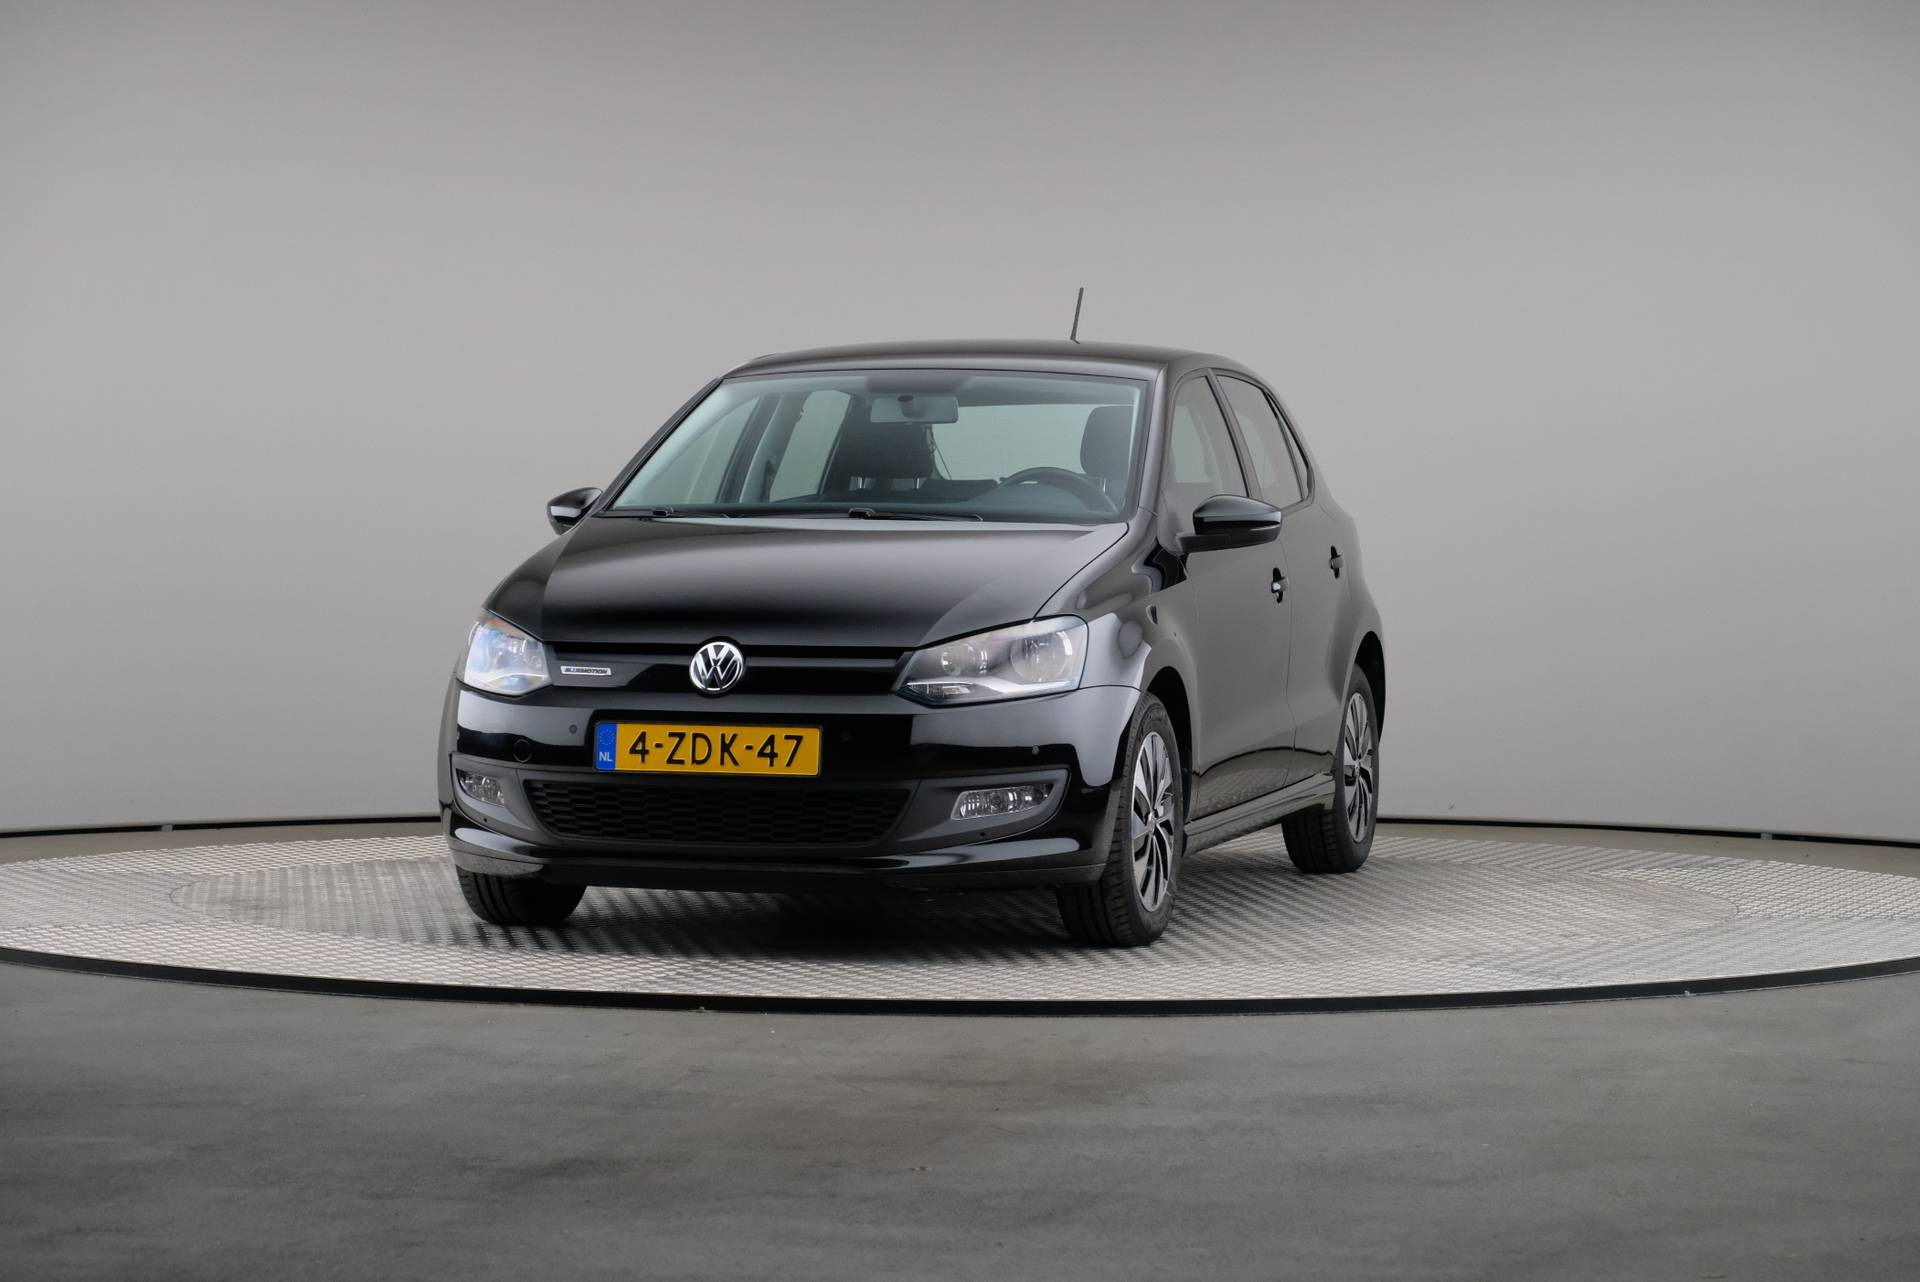 Volkswagen Polo 1.4 TDI BlueMotion Executive plus, Navigatie, 360-image34